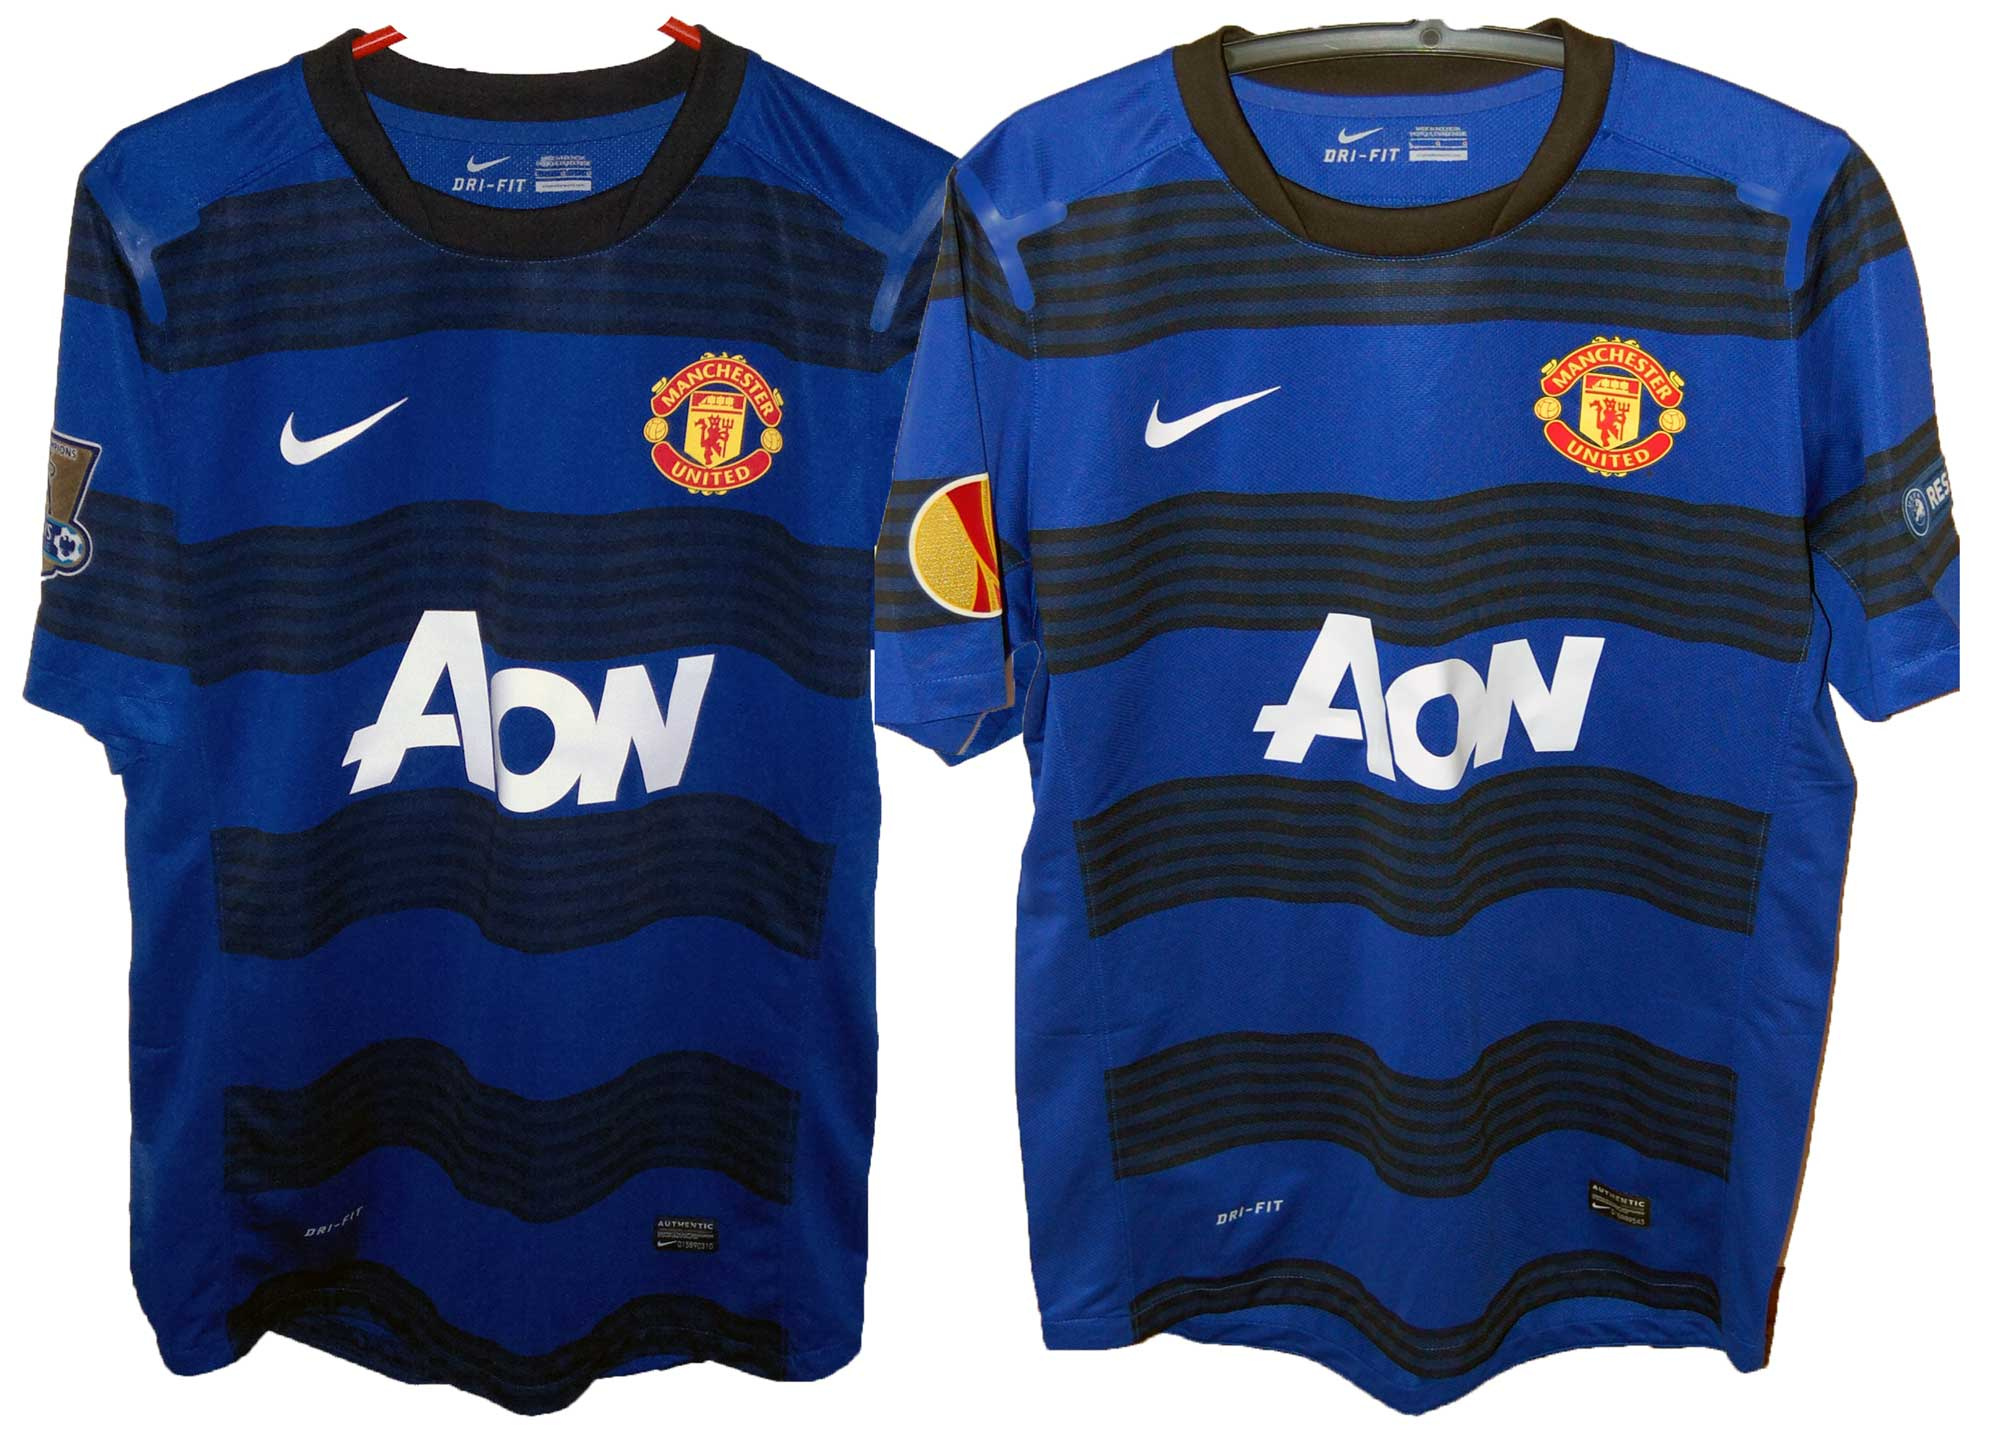 2011/12 Change Shirts Domestic and European